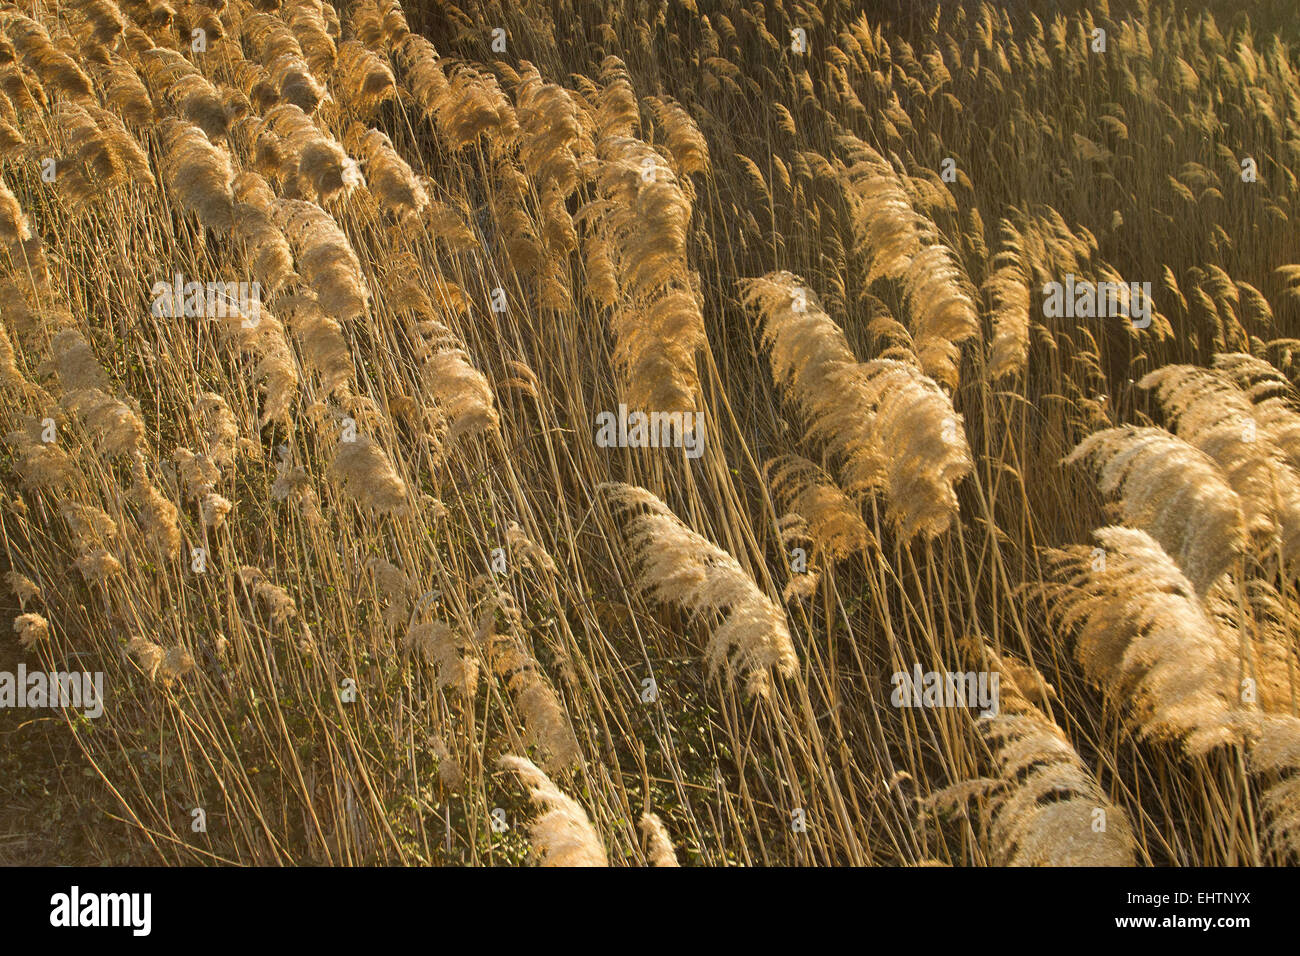 ILLUSTRATION OF THE CAMARGUE, GARD (30), LANGUEDOC-ROUSSILLON, FRANCE - Stock Image